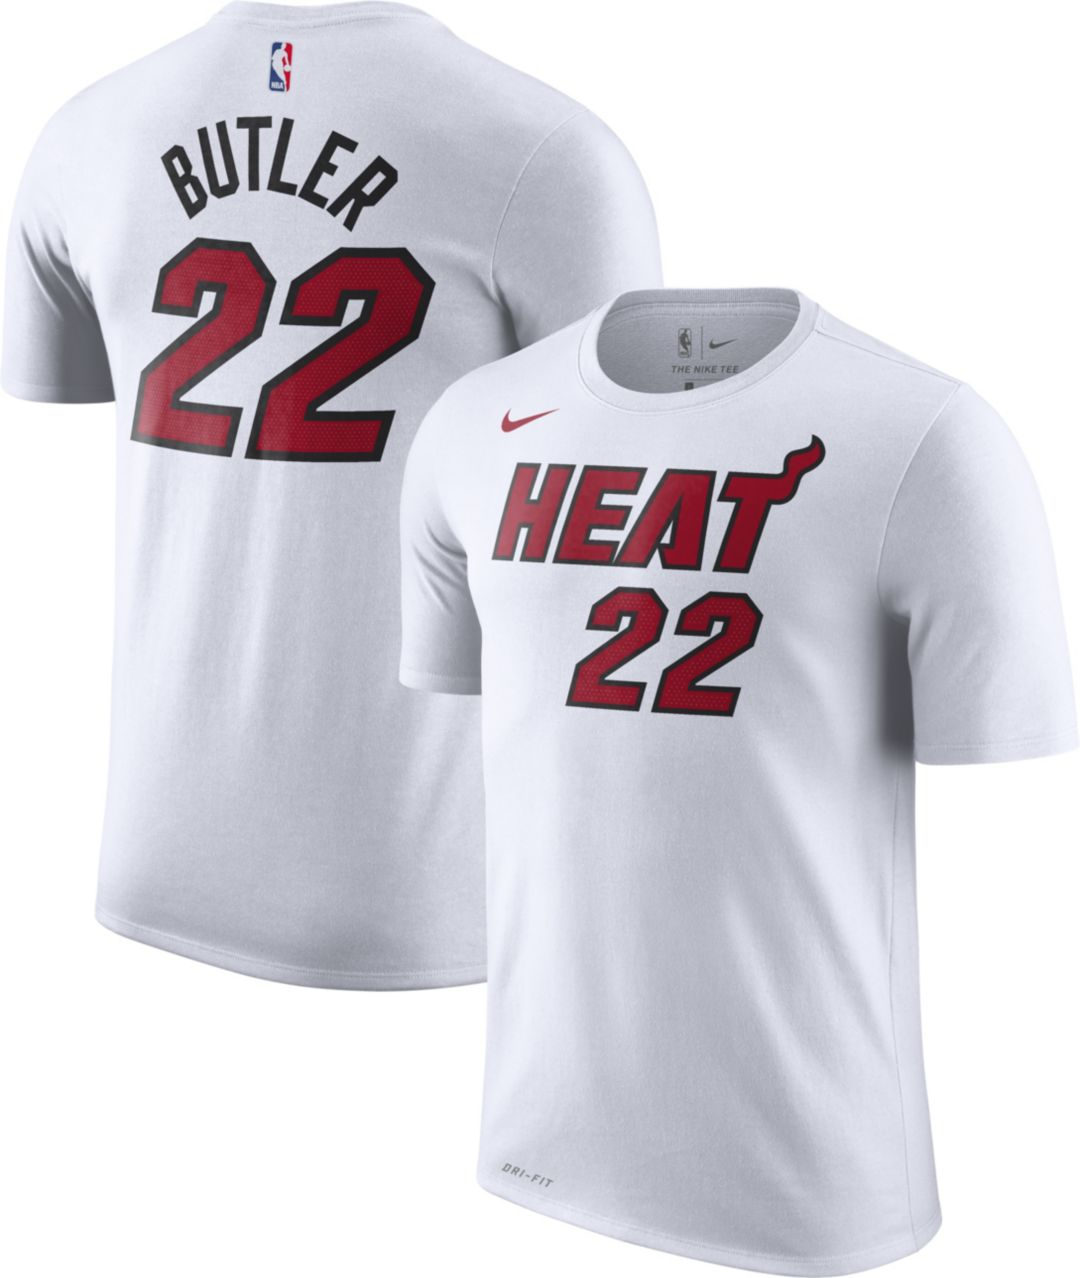 best website 28b91 c5a51 Nike Youth Miami Heat Jimmy Butler #22 Dri-FIT White T-Shirt